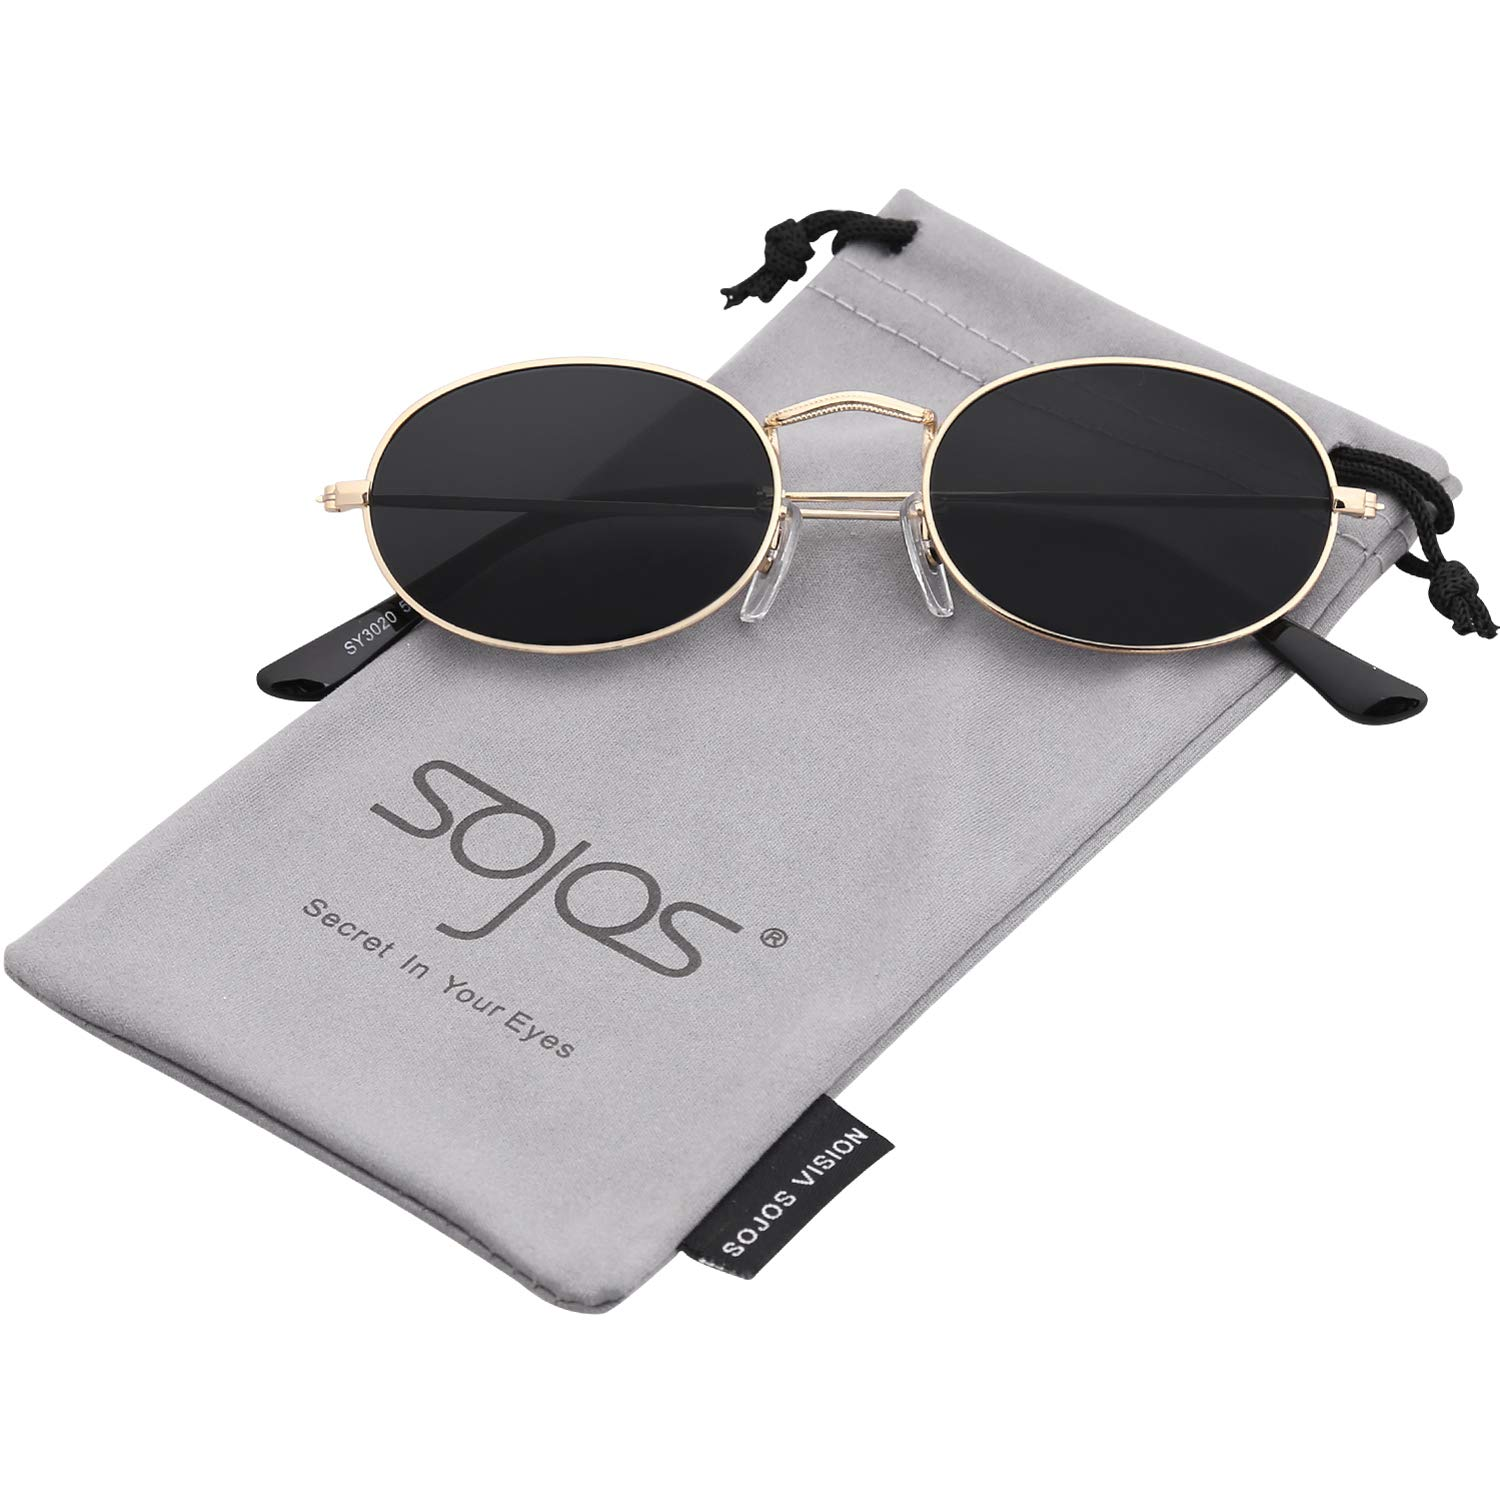 bf1902ee5db SOJOS Vintage Slender Oval Sunglasses Small Metal Frame Candy Colors SJ1087  with Black Frame Grey Lens